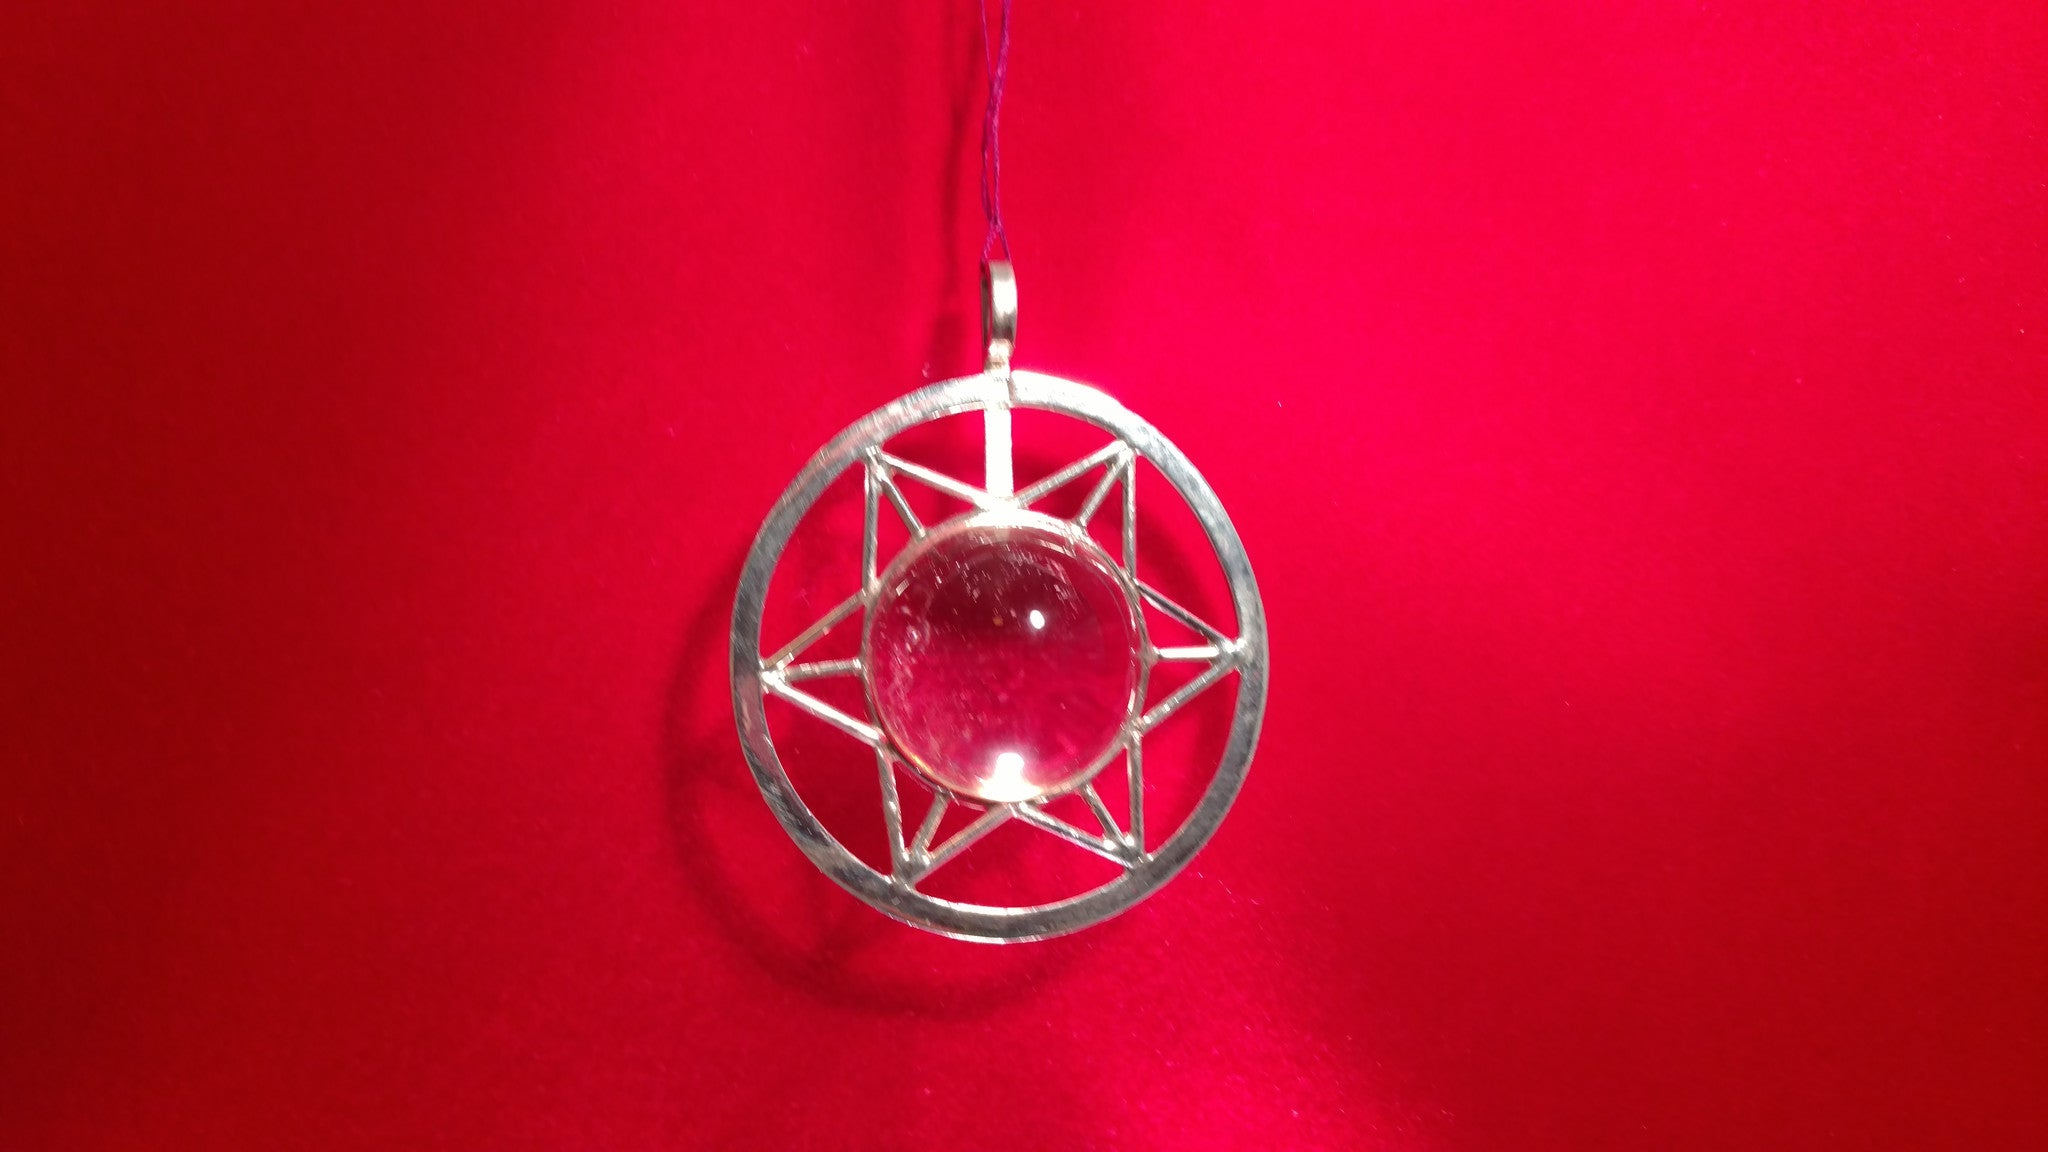 #1508. Clear Quartz Specialty Sphere. 6 Pointed Star 21g